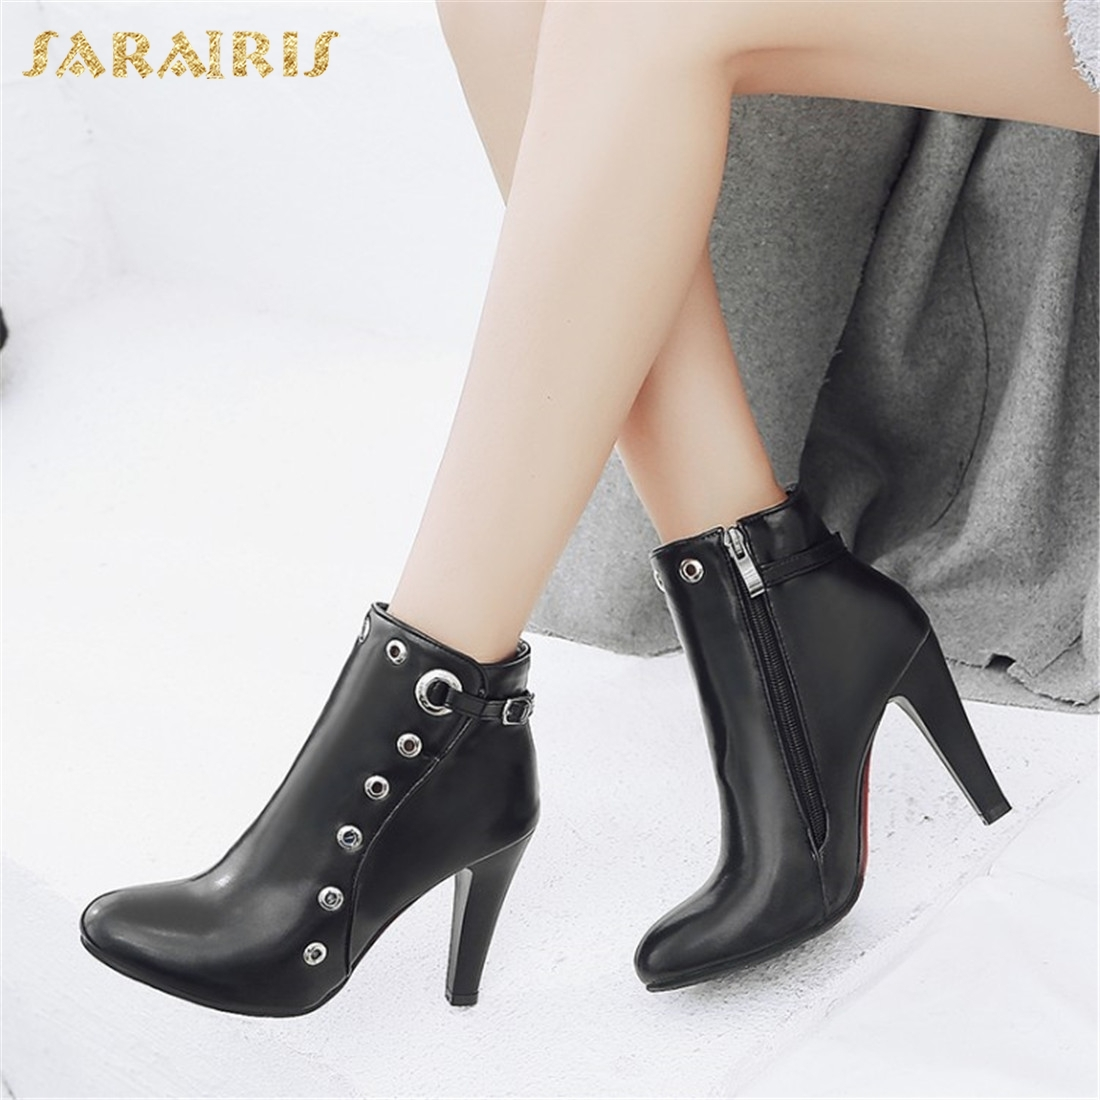 SARAIRIS New plus size 34-48 High Heels Zip Up Ankle Boots Woman Shoes Autumn Winter Boots Female Hot Sale Shoes Women sarairis plus size 34 50 add fur autumn winter boots woman shoes chunky heels lace up platform ankle boots female shoes woman